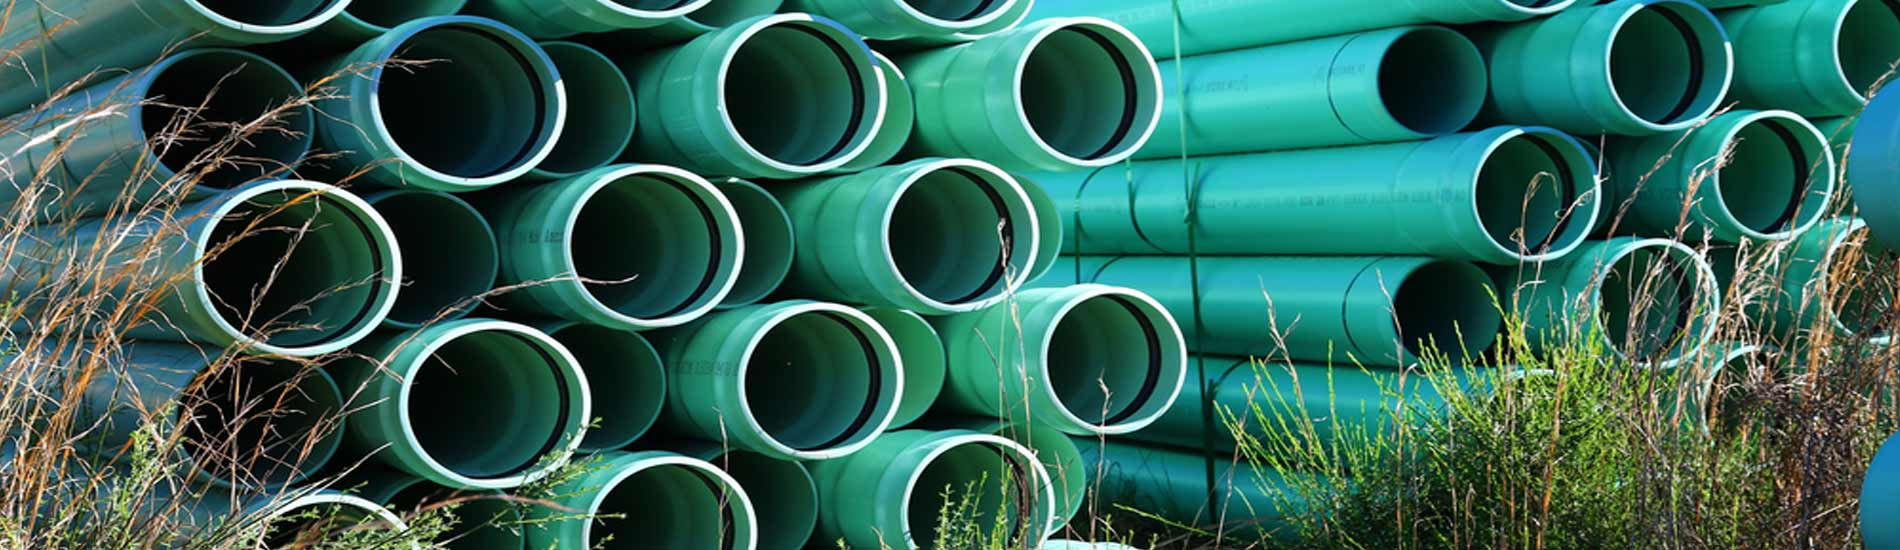 Rows and rows of stacked commercial water pipe